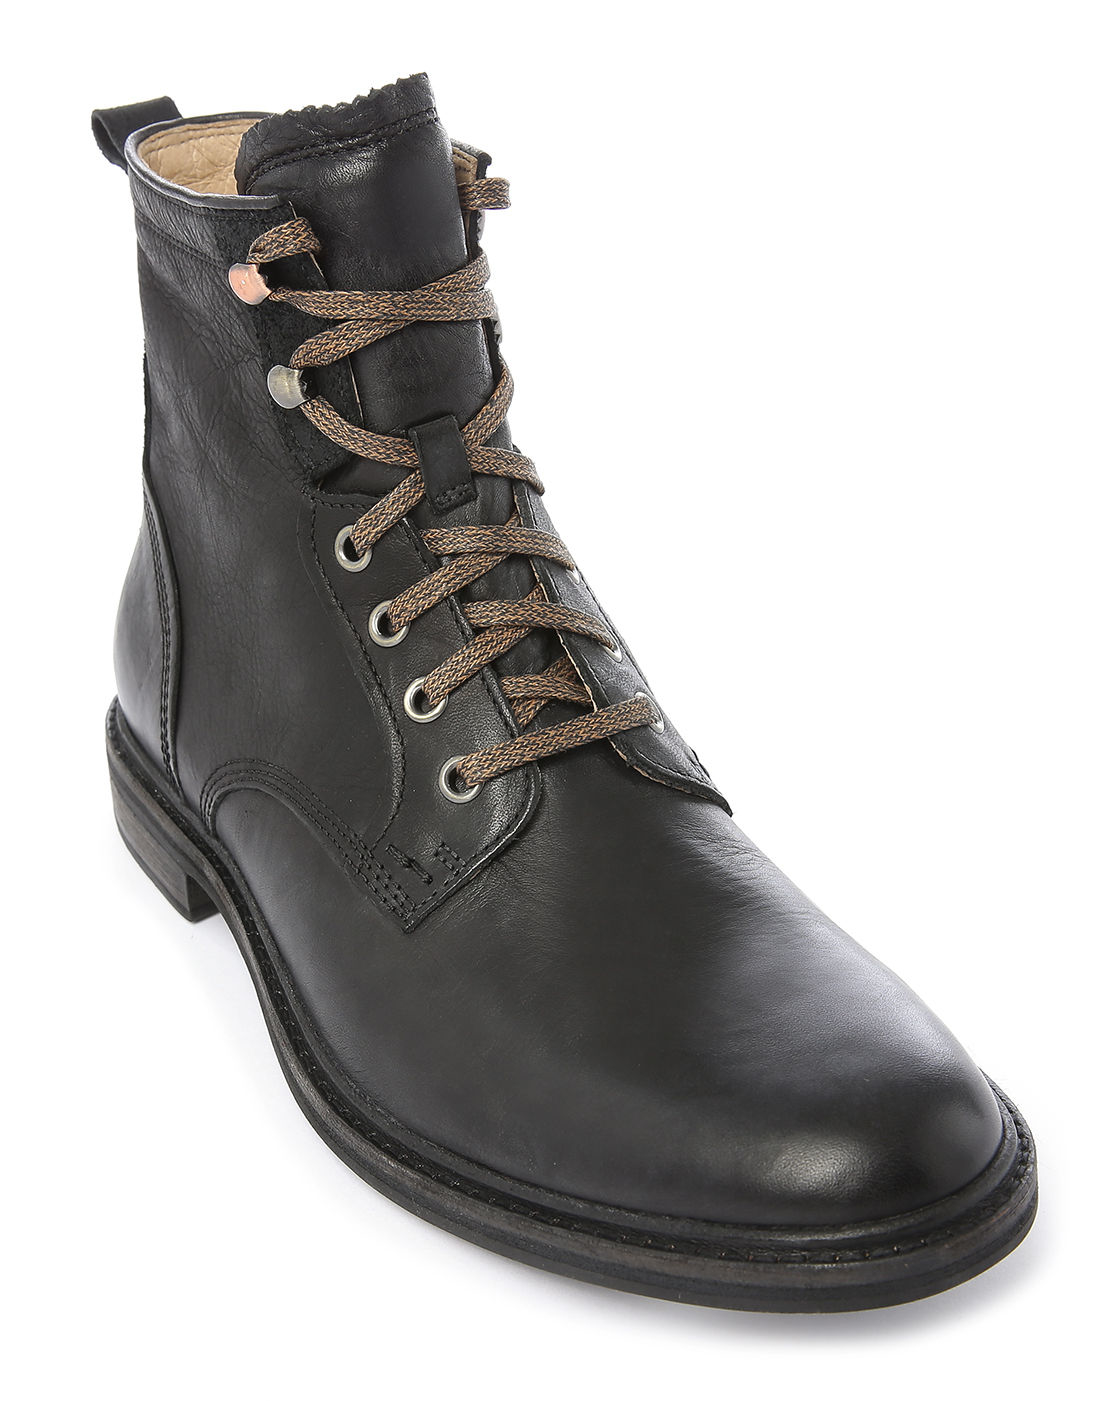 Ugg Selwood Black Leather Boots With Laces in Black for ...